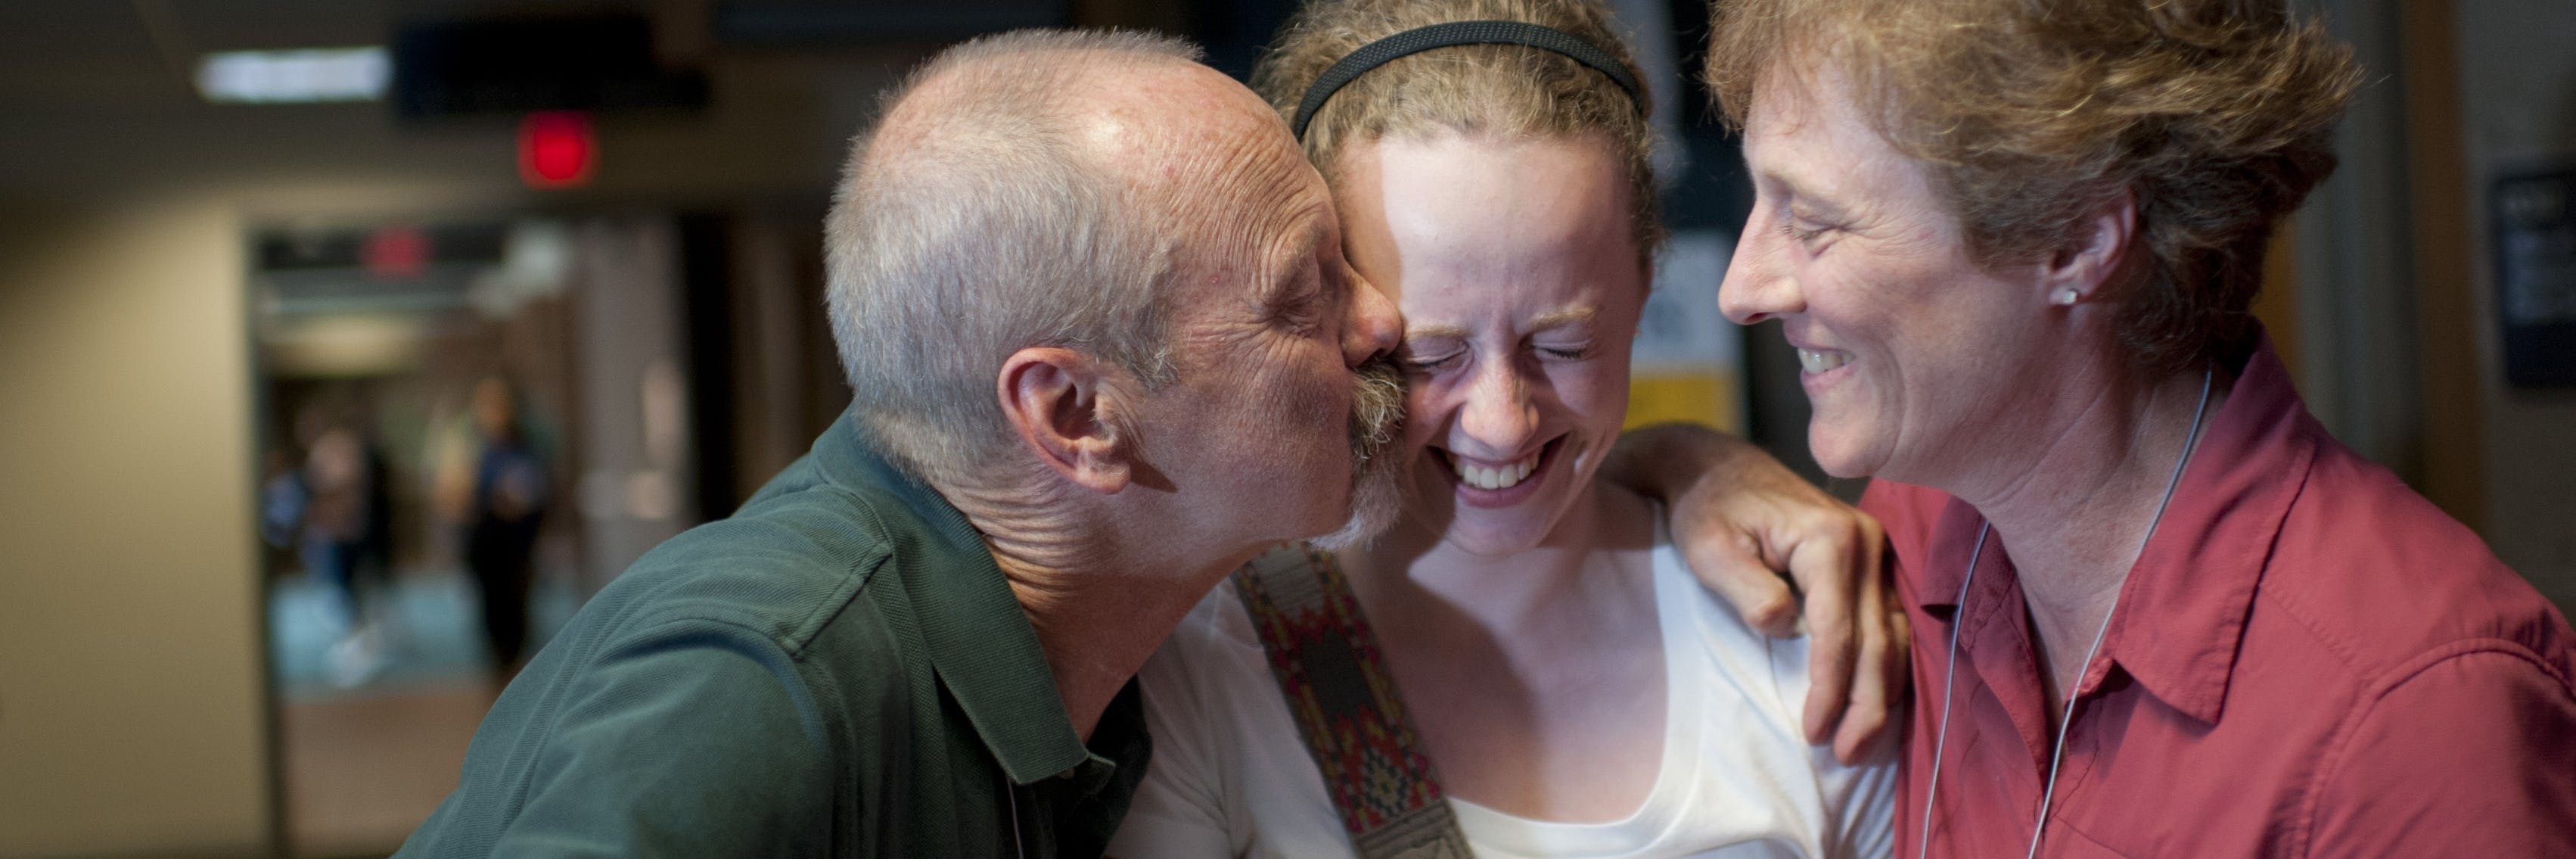 A dad kissing his daughter